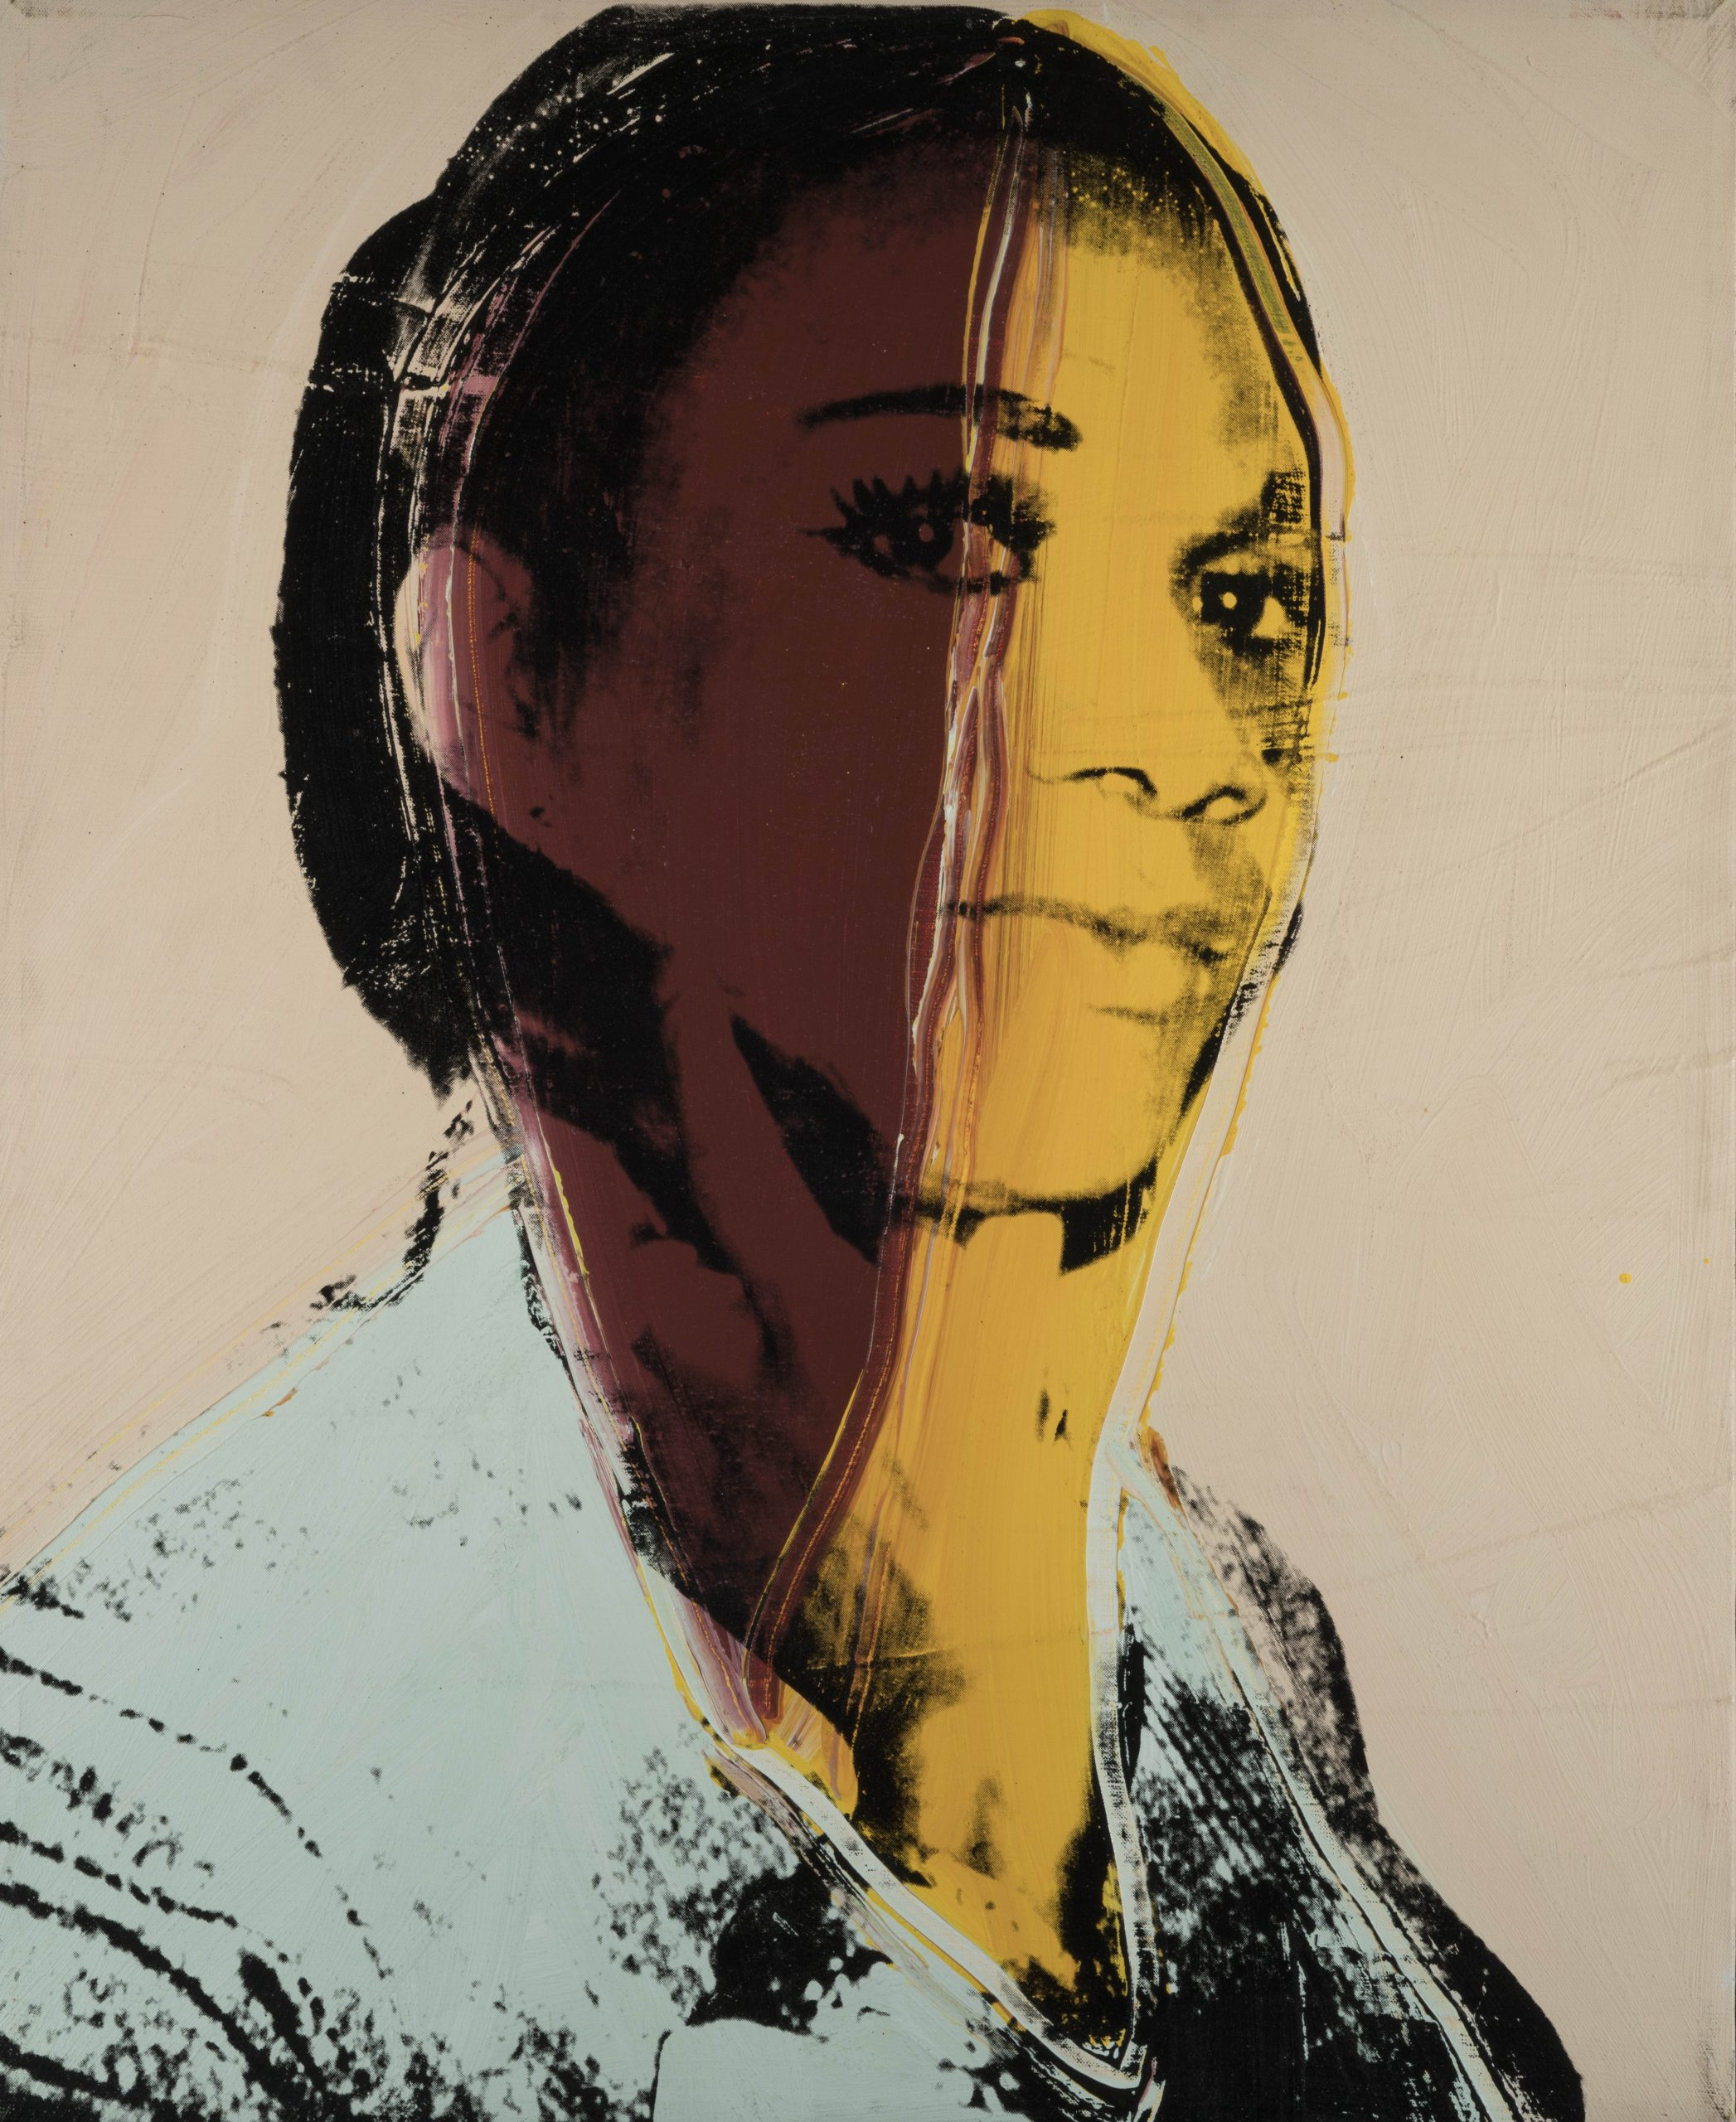 Andy Warhol - Ladies and Gentlemen (Alphanso Panell)